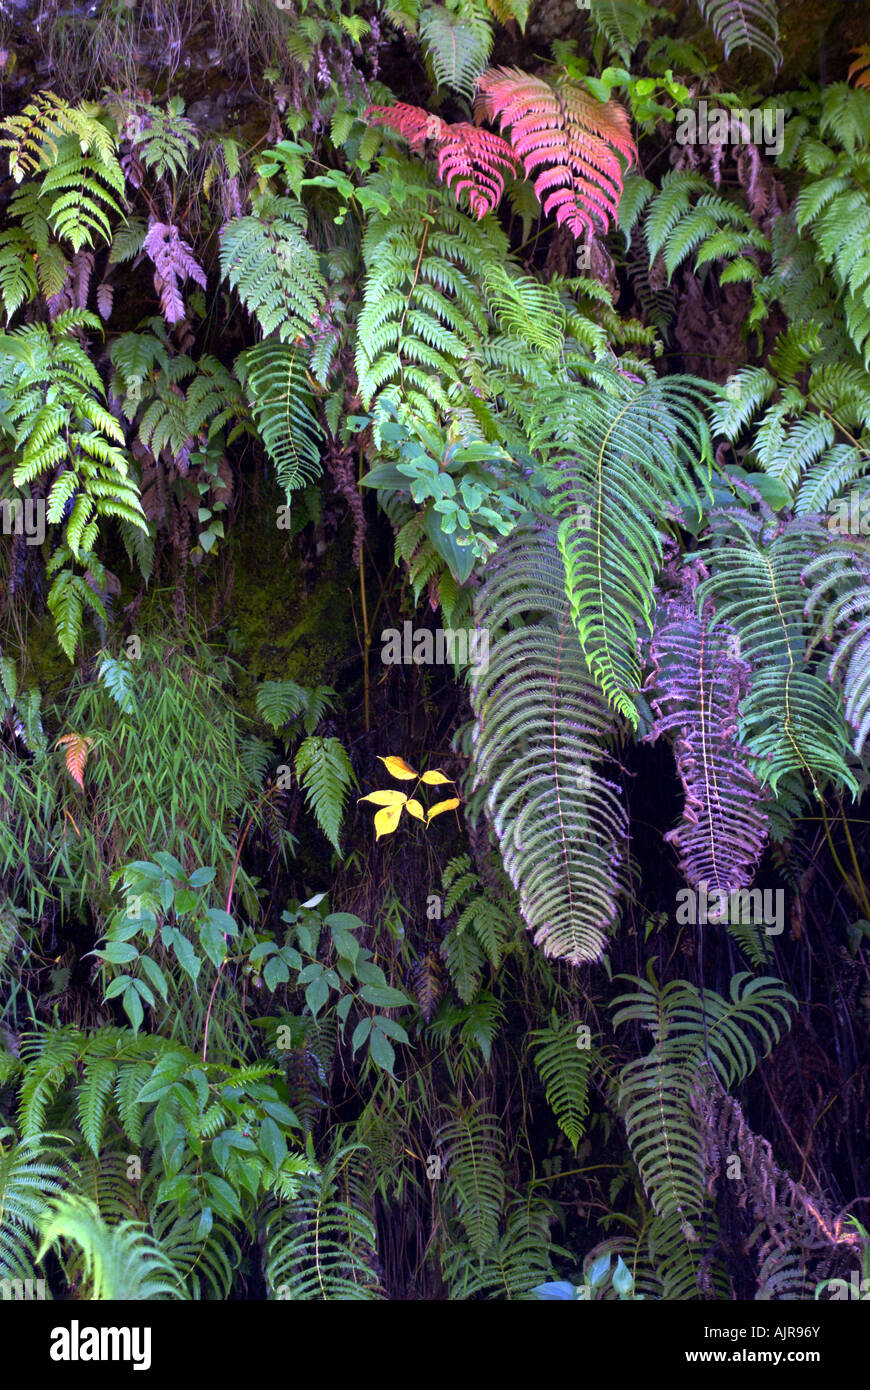 A cascade of ferns hang along a wet cliff face near the village of Tibling, Ganesh Himal, Nepal - Stock Image